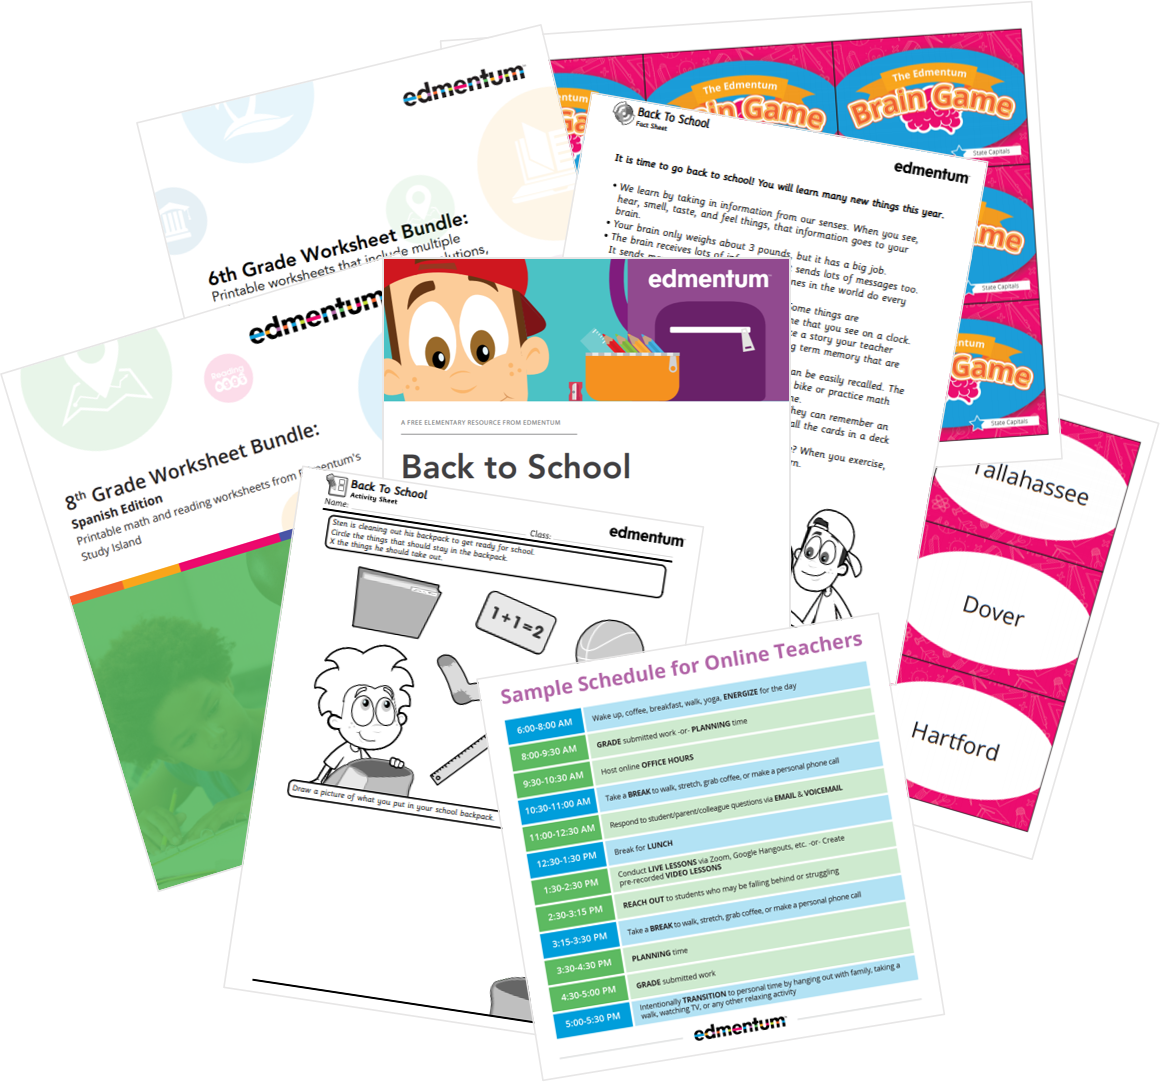 Back to School: Free Printable Classroom Resources   Resource classroom [ 1082 x 1160 Pixel ]